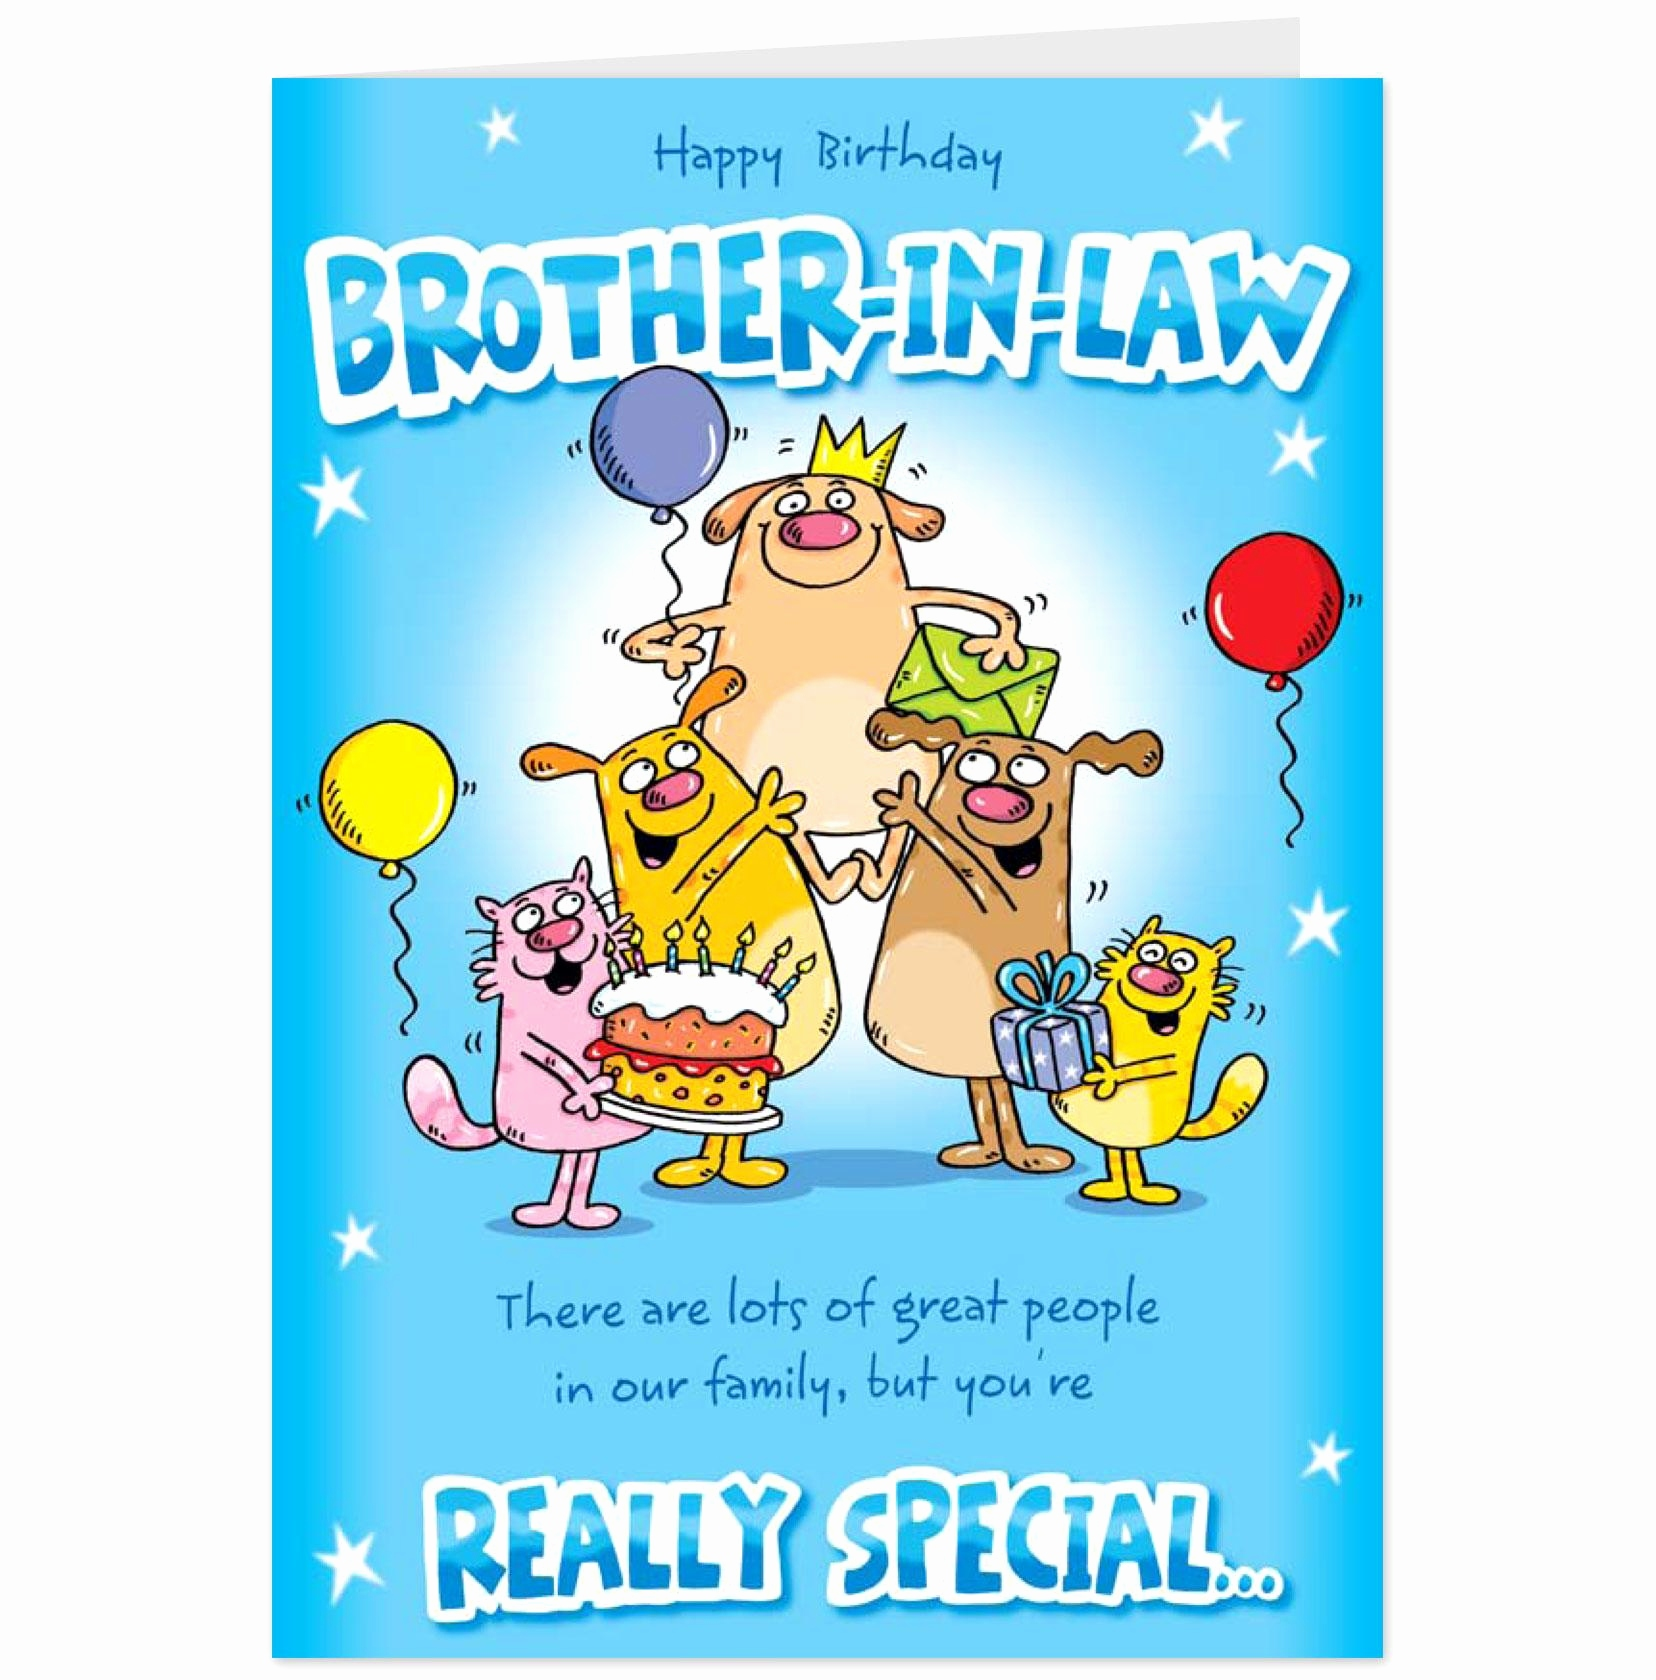 uncle birthday card funny ; uncle-birthday-card-messages-beautiful-happy-birthday-brother-funny-messages-really-special-brother-in-of-uncle-birthday-card-messages